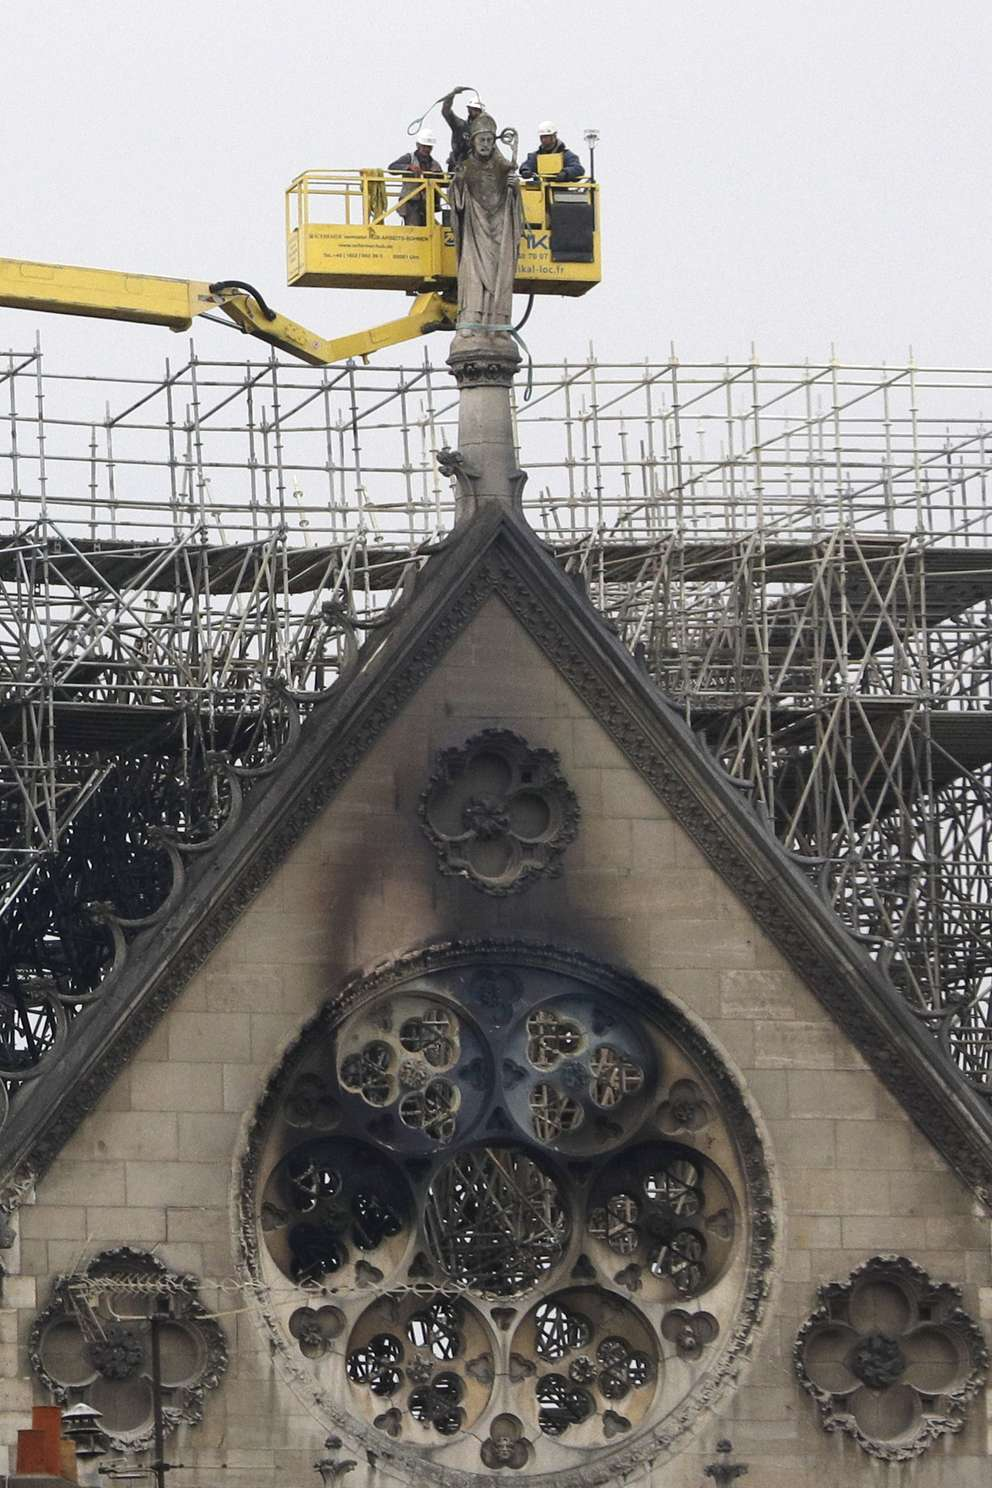 Experts prepare to lift a statue from the damaged Notre Dame cathedral after the fire in Paris, Tuesday, April 16, 2019. Experts are assessing the blackened shell of Paris' iconic Notre Dame cathedral to establish next steps to save what remains after a devastating fire destroyed much of the almost 900-year-old building. With the fire that broke out Monday evening and quickly consumed the cathedral now under control, attention is turning to ensuring the structural integrity of the remaining building. (AP Photo/Kamil Zihnioglu)